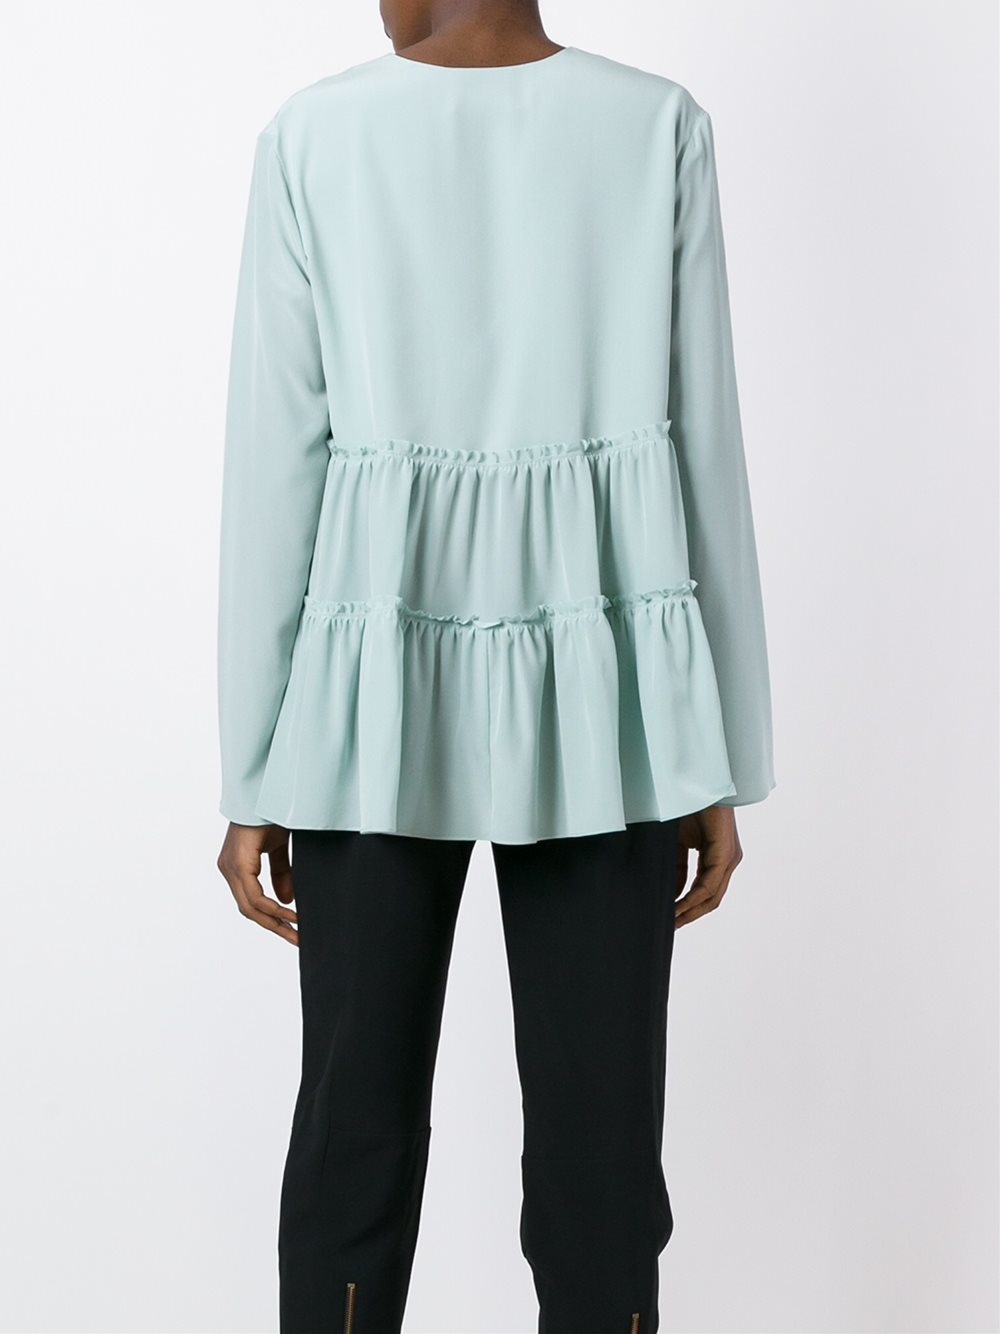 Chloé Tiered Blouse in Blue